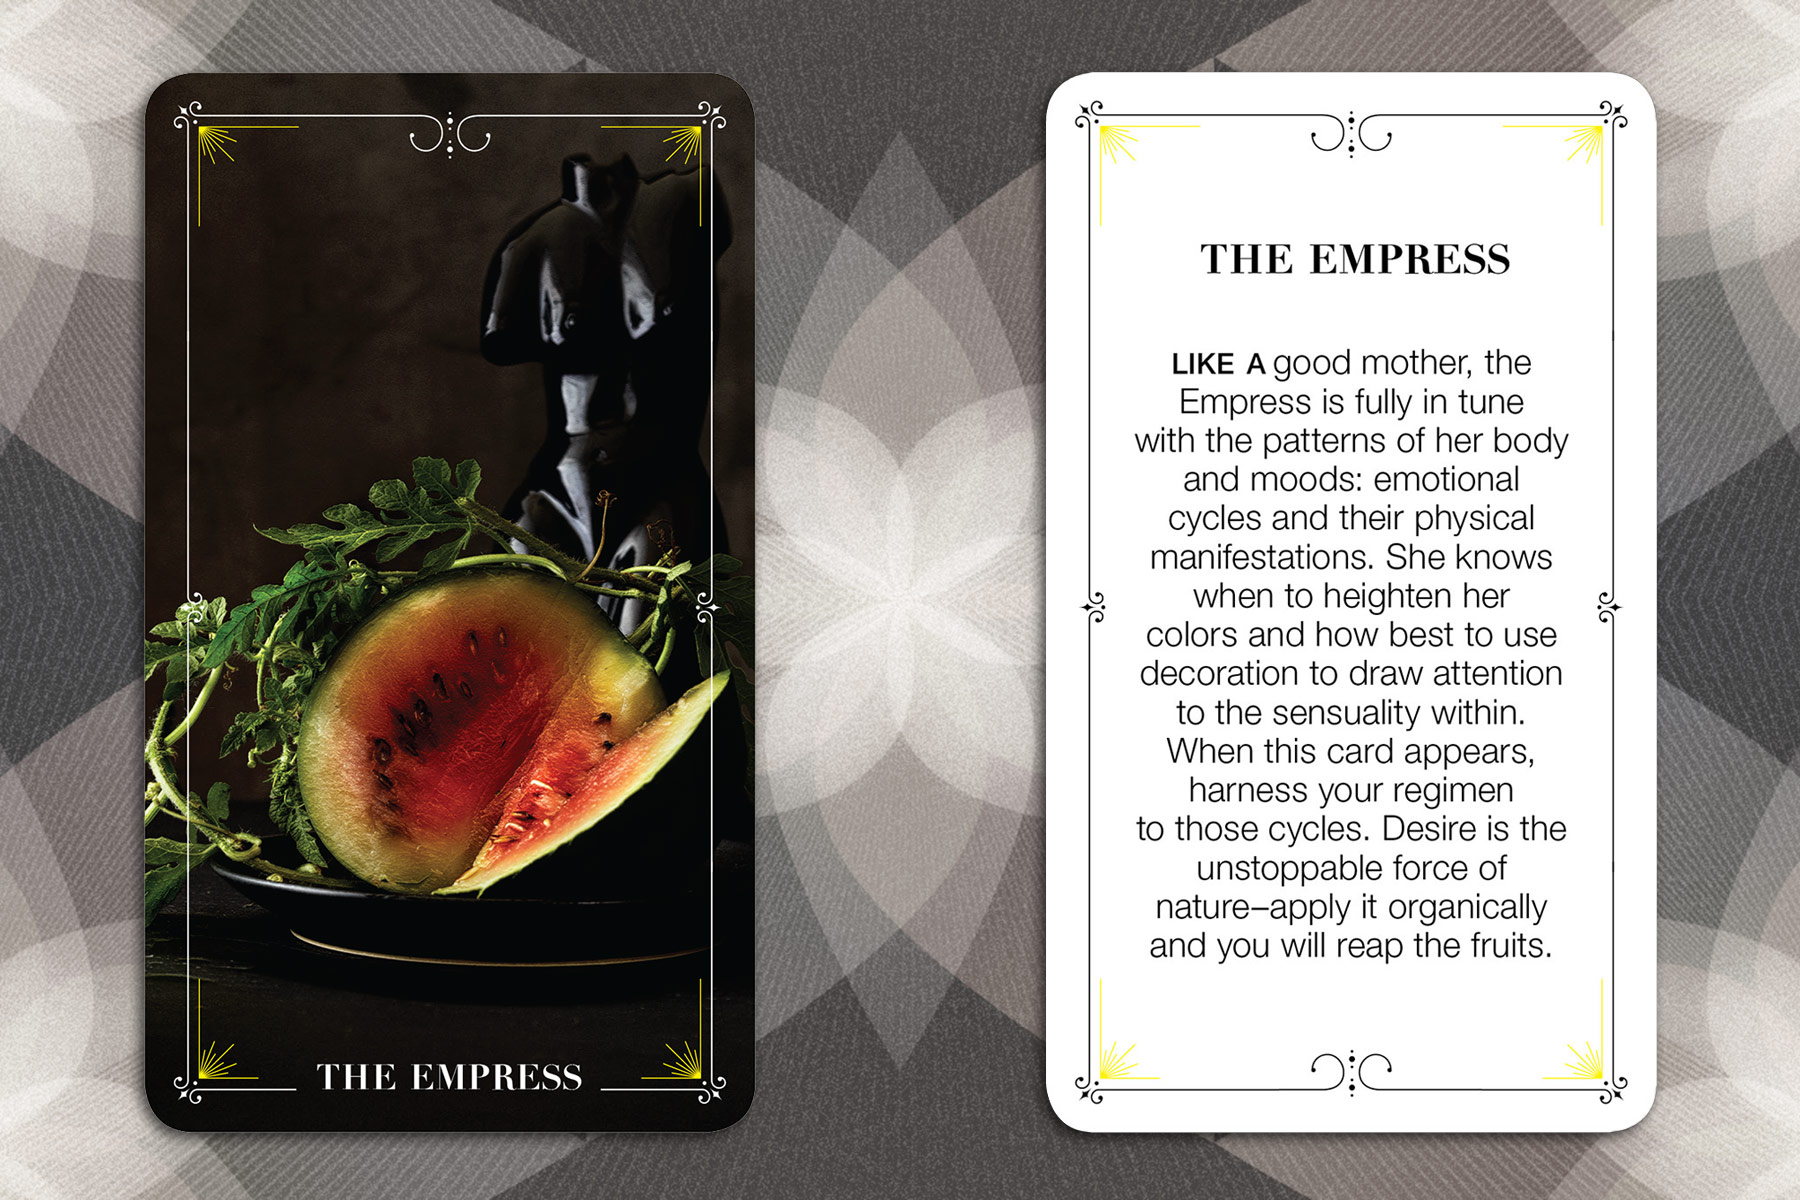 005_BloomTarot_TheEmpress